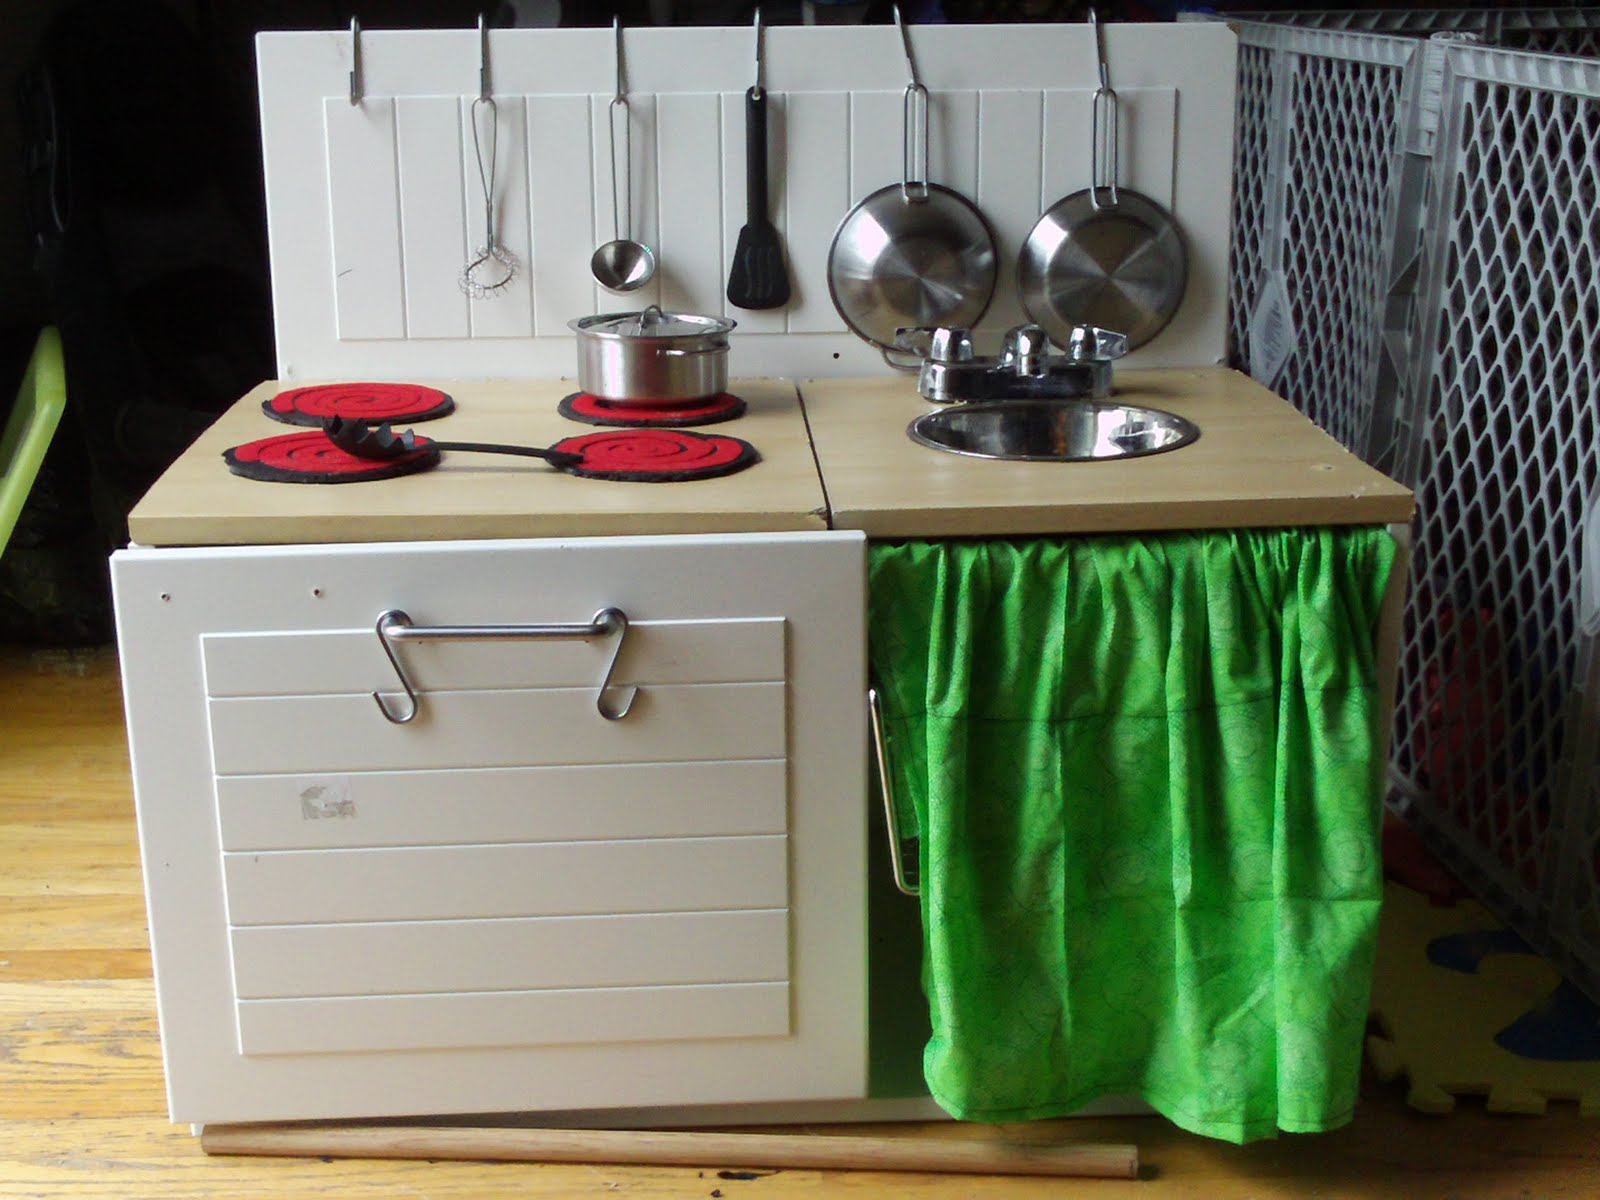 French Country Play Kitchen - IKEA Hackers